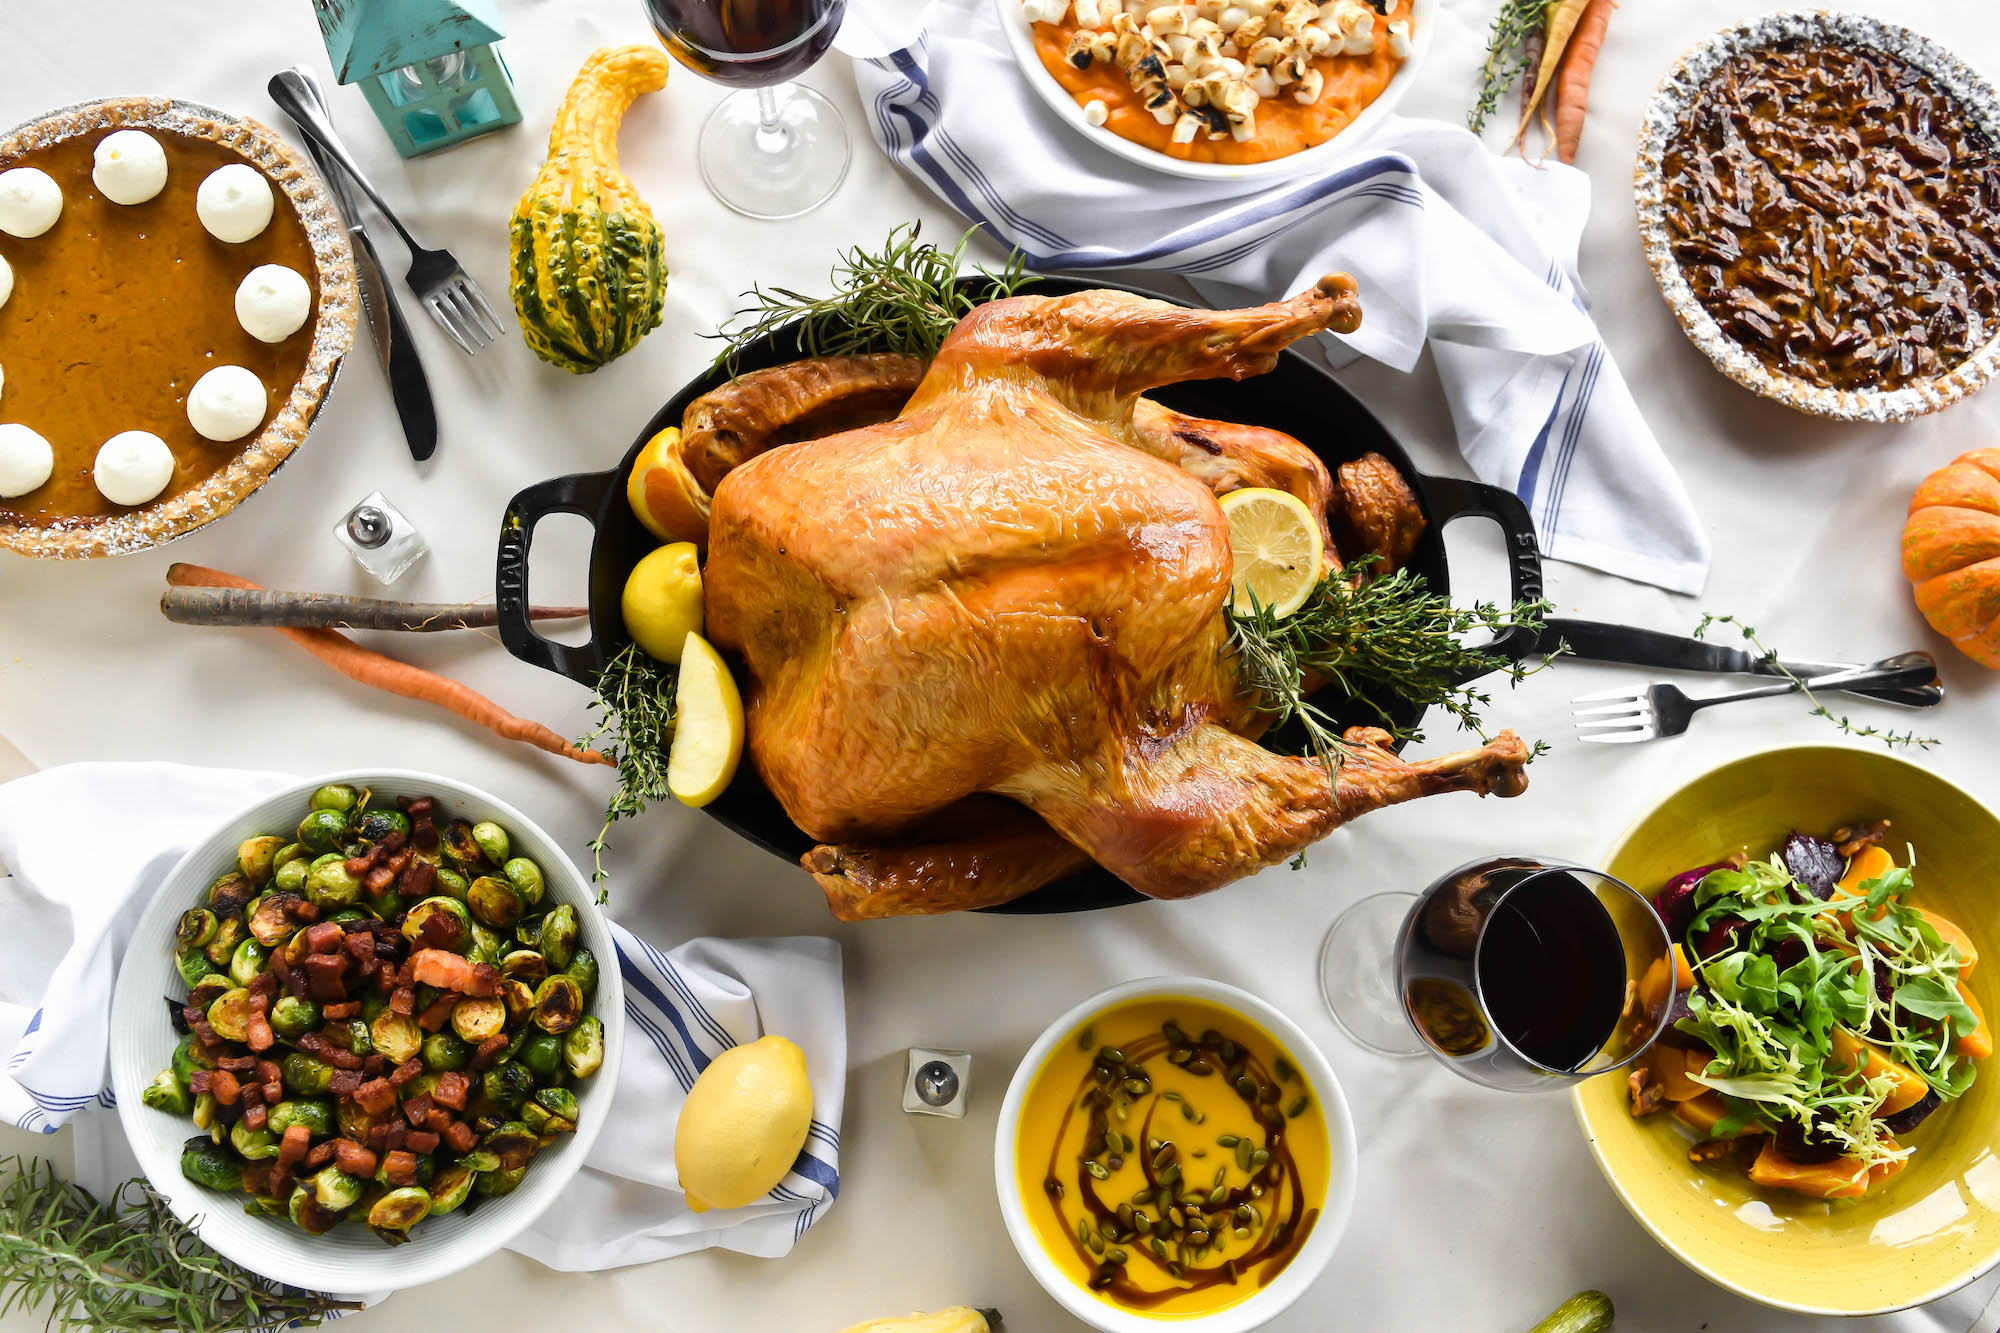 Where to order takeout Thanksgiving meals this year in NYC | 6sqft